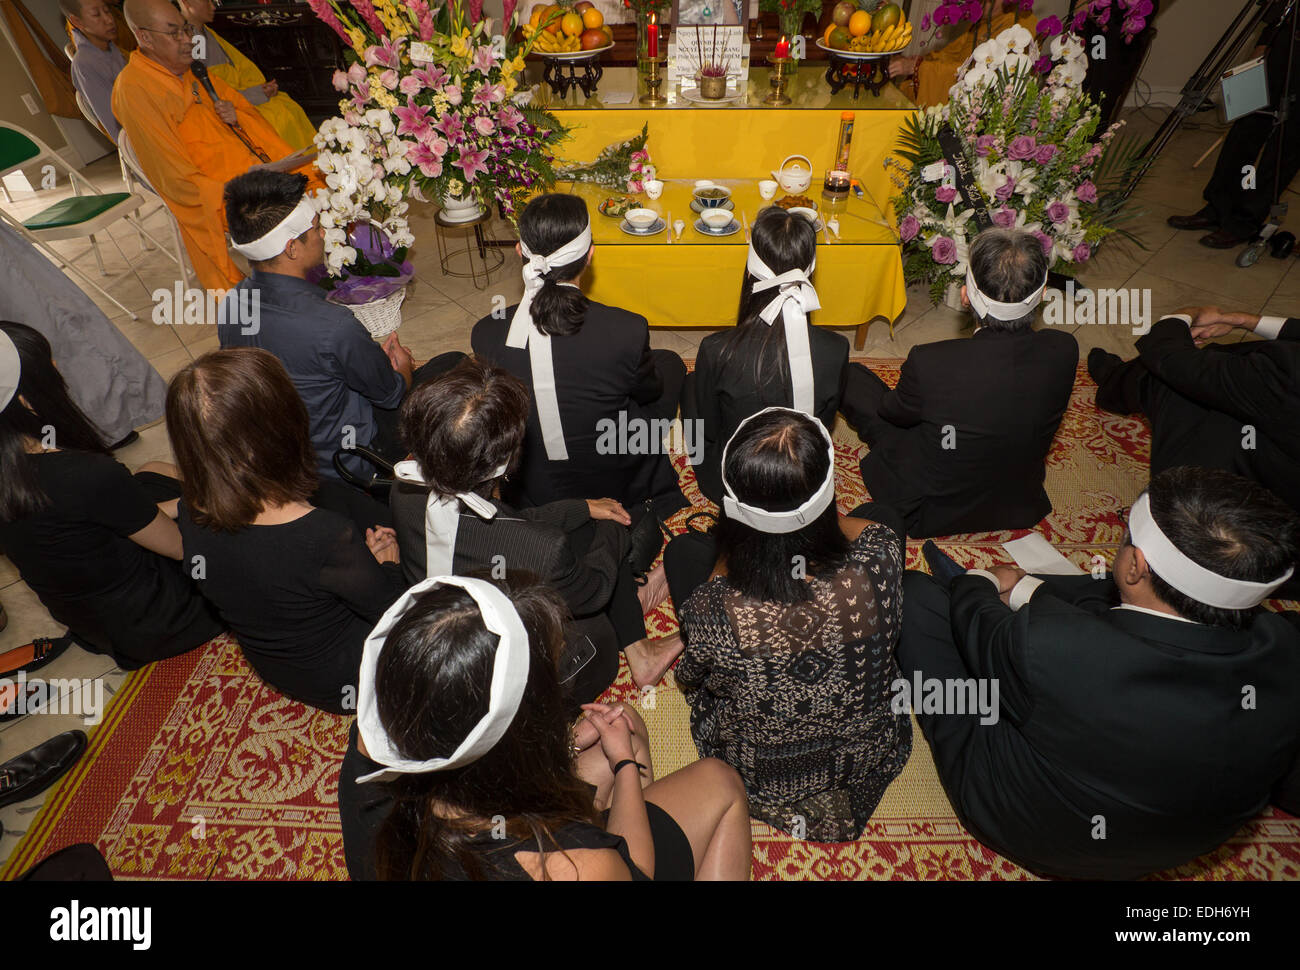 Family members, mourners at Vietnamese funeral service, Little Saigon district, city of Westminster, Orange County, Stock Photo